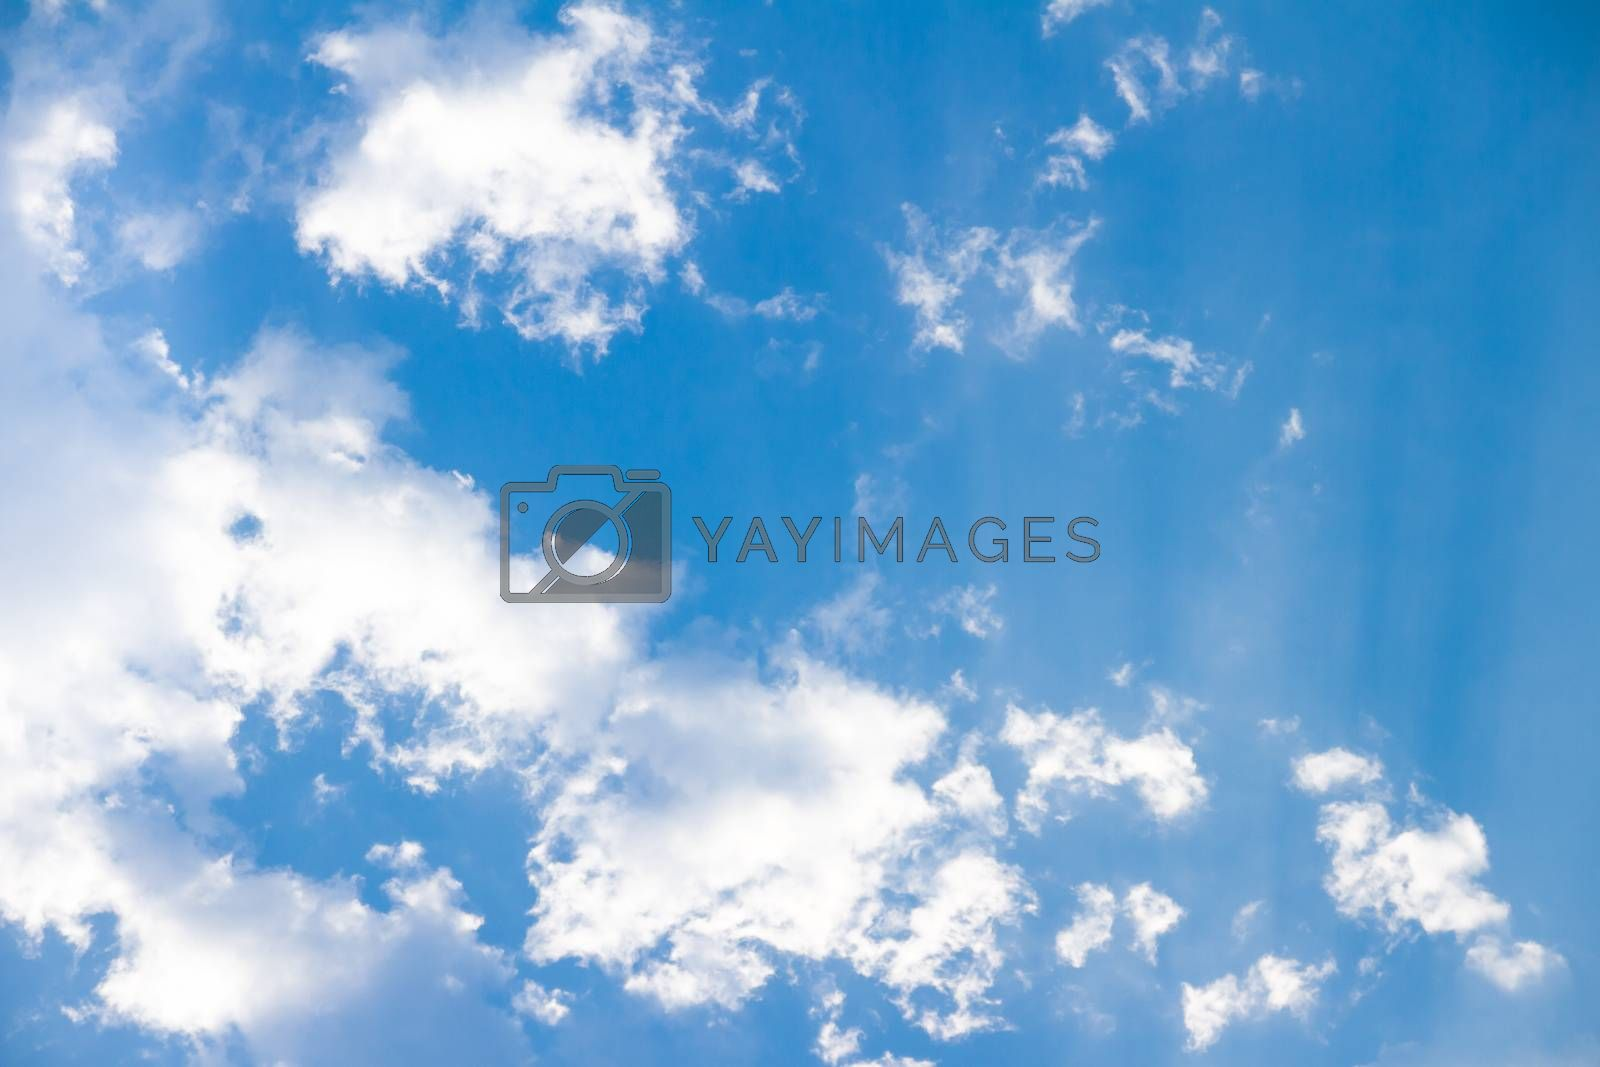 Royalty free image of Blue sky with clouds by kasinv